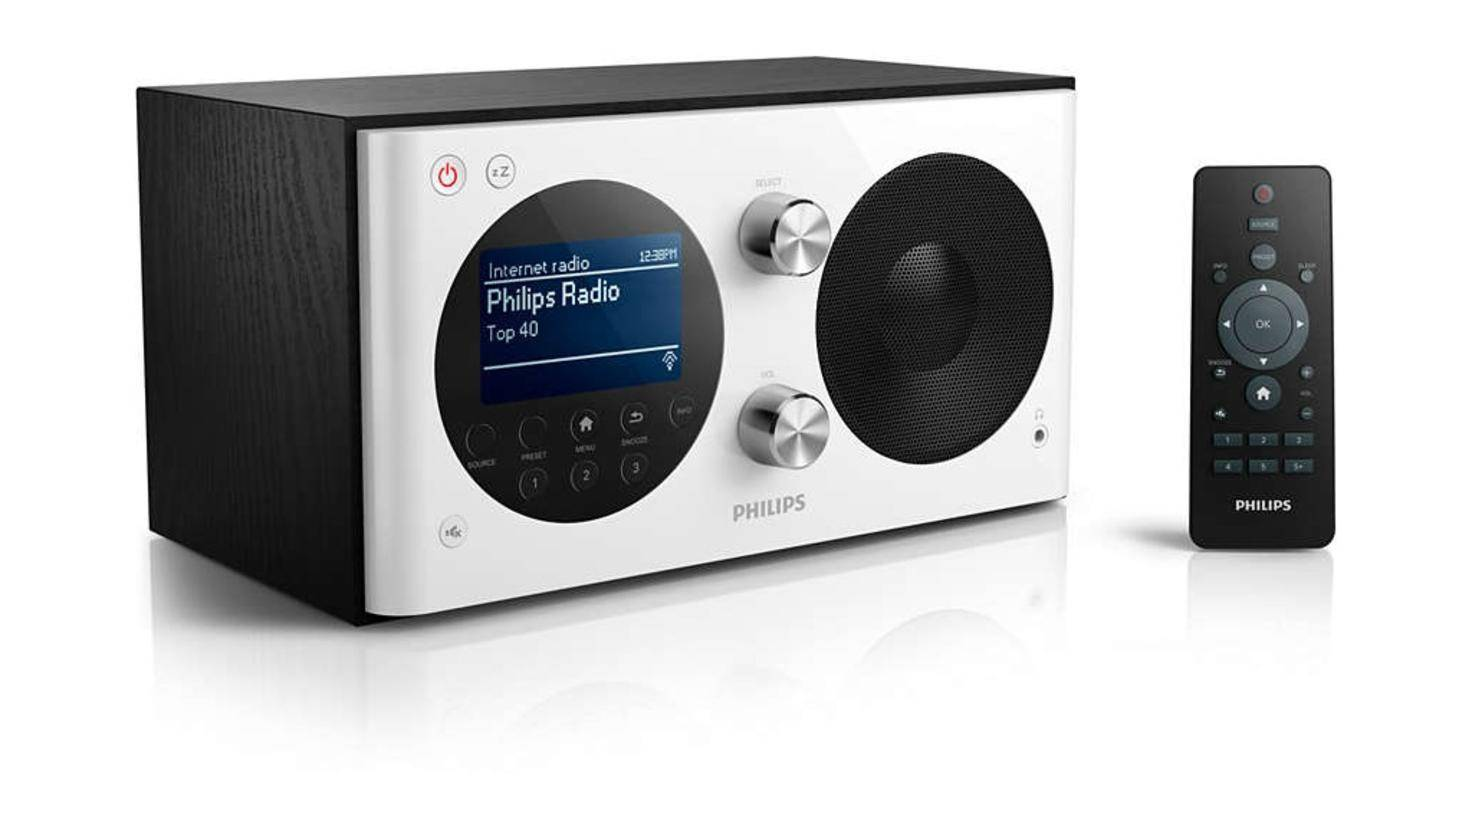 Philips-Internetradio-DAB-Plus